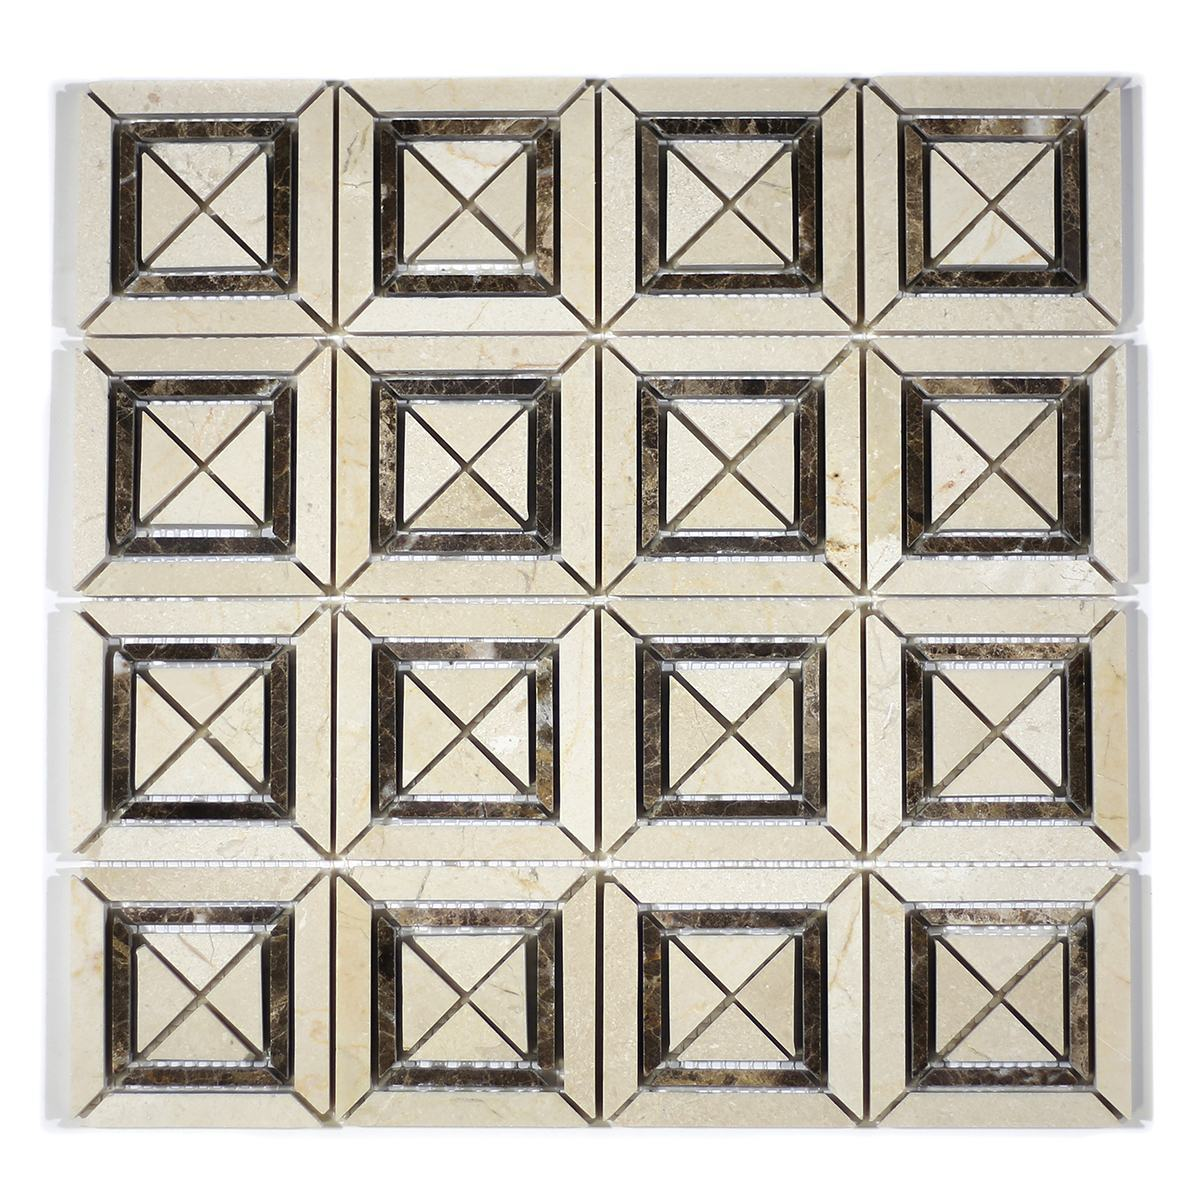 MA220-SQ  Crema Marfil + Emparador Squares with space polished